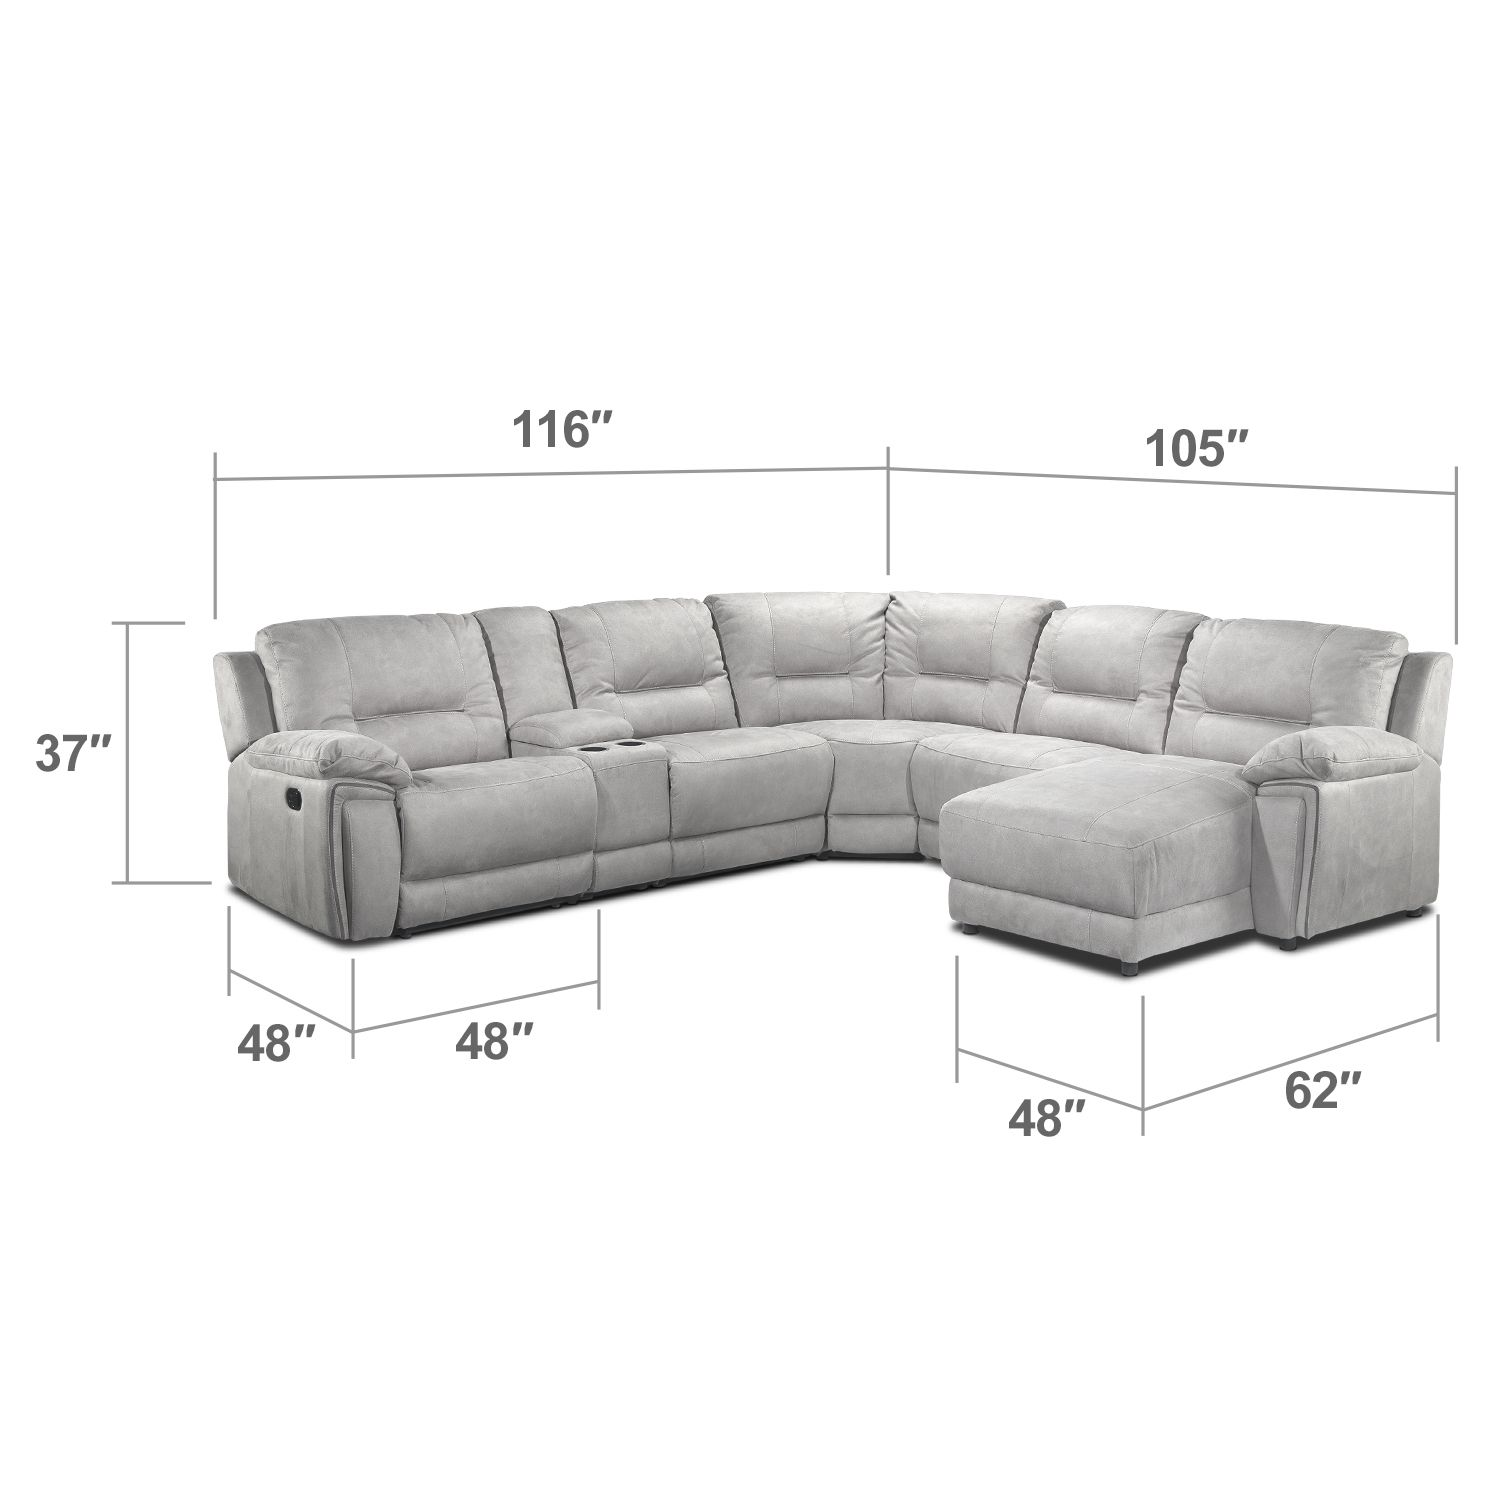 Cool Pick. The Easy To Coordinate Grey Colour Of The Pasadena Sectional Sofa  Offers A Cool, Modern Neutral For Your Living Room.